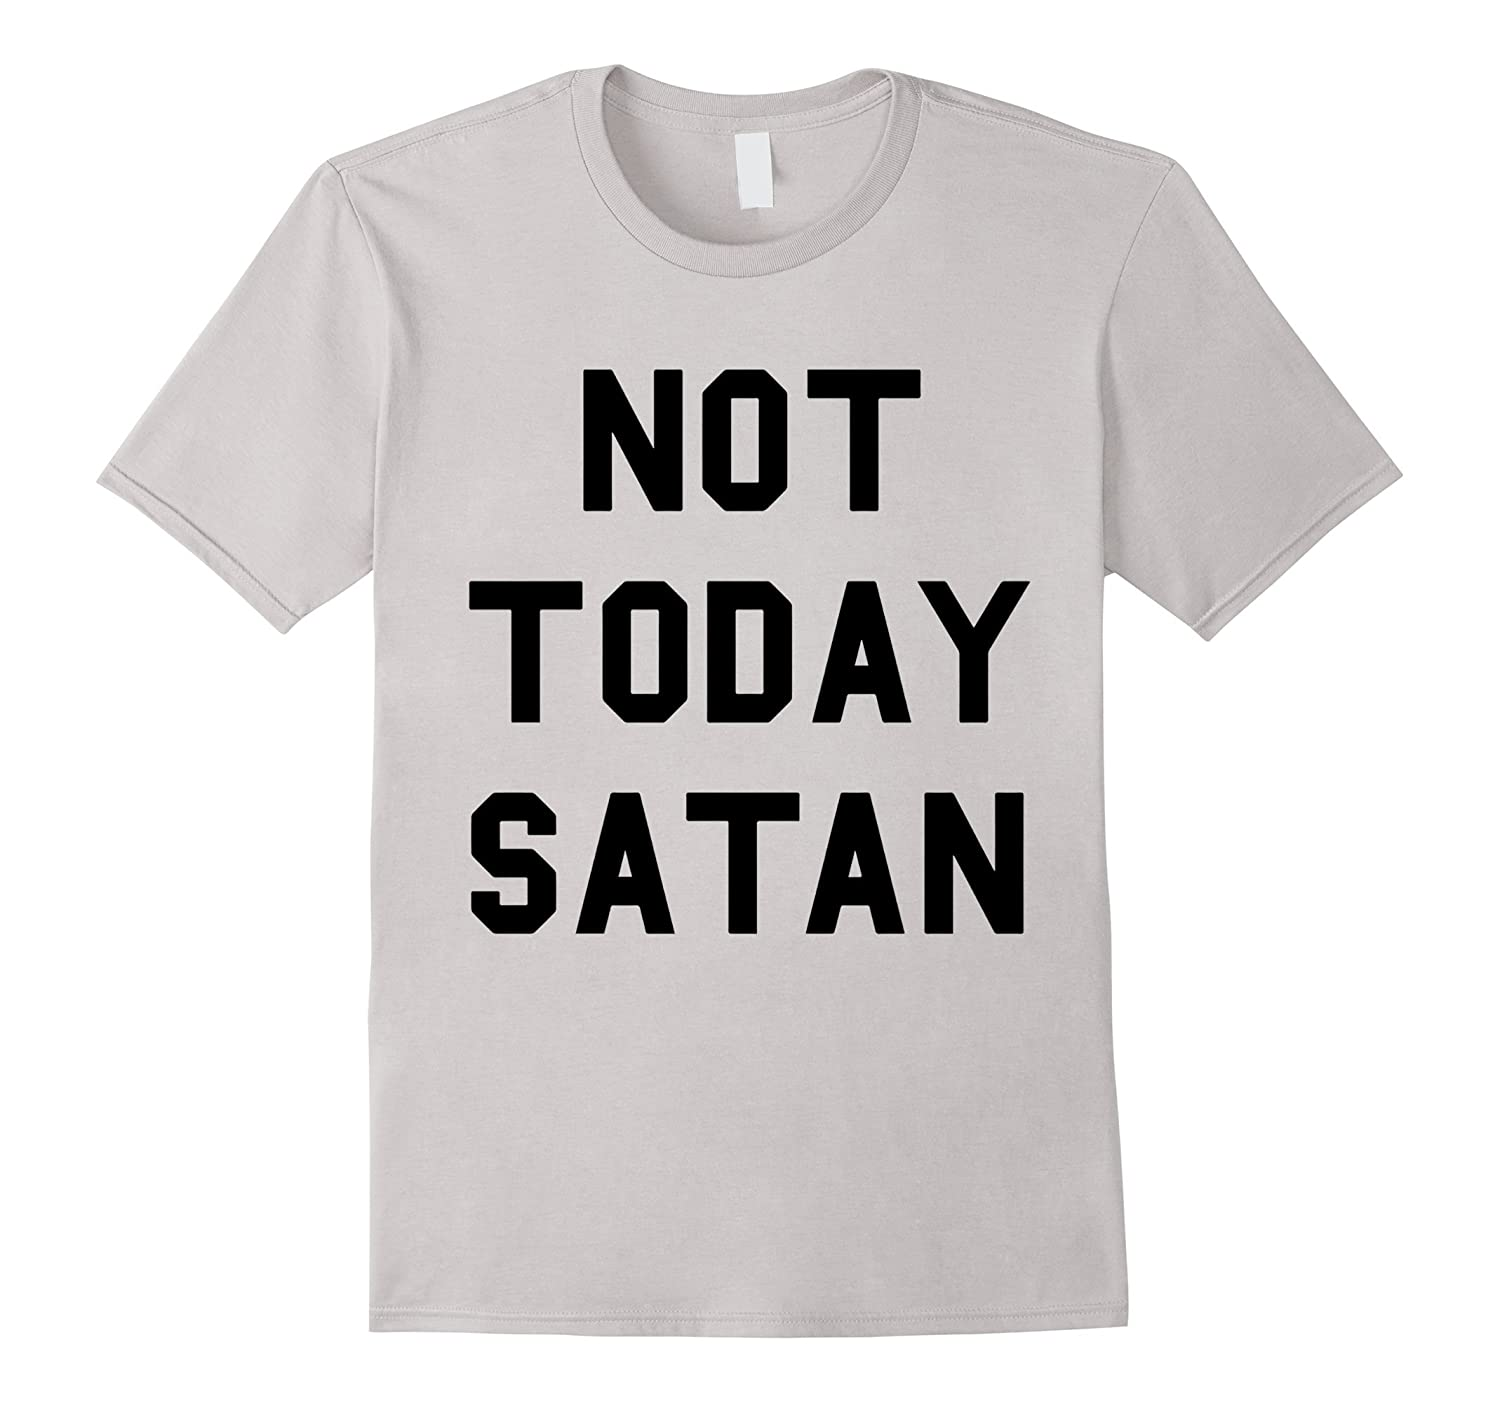 Not Today Satan T Shirt for Christian-RT